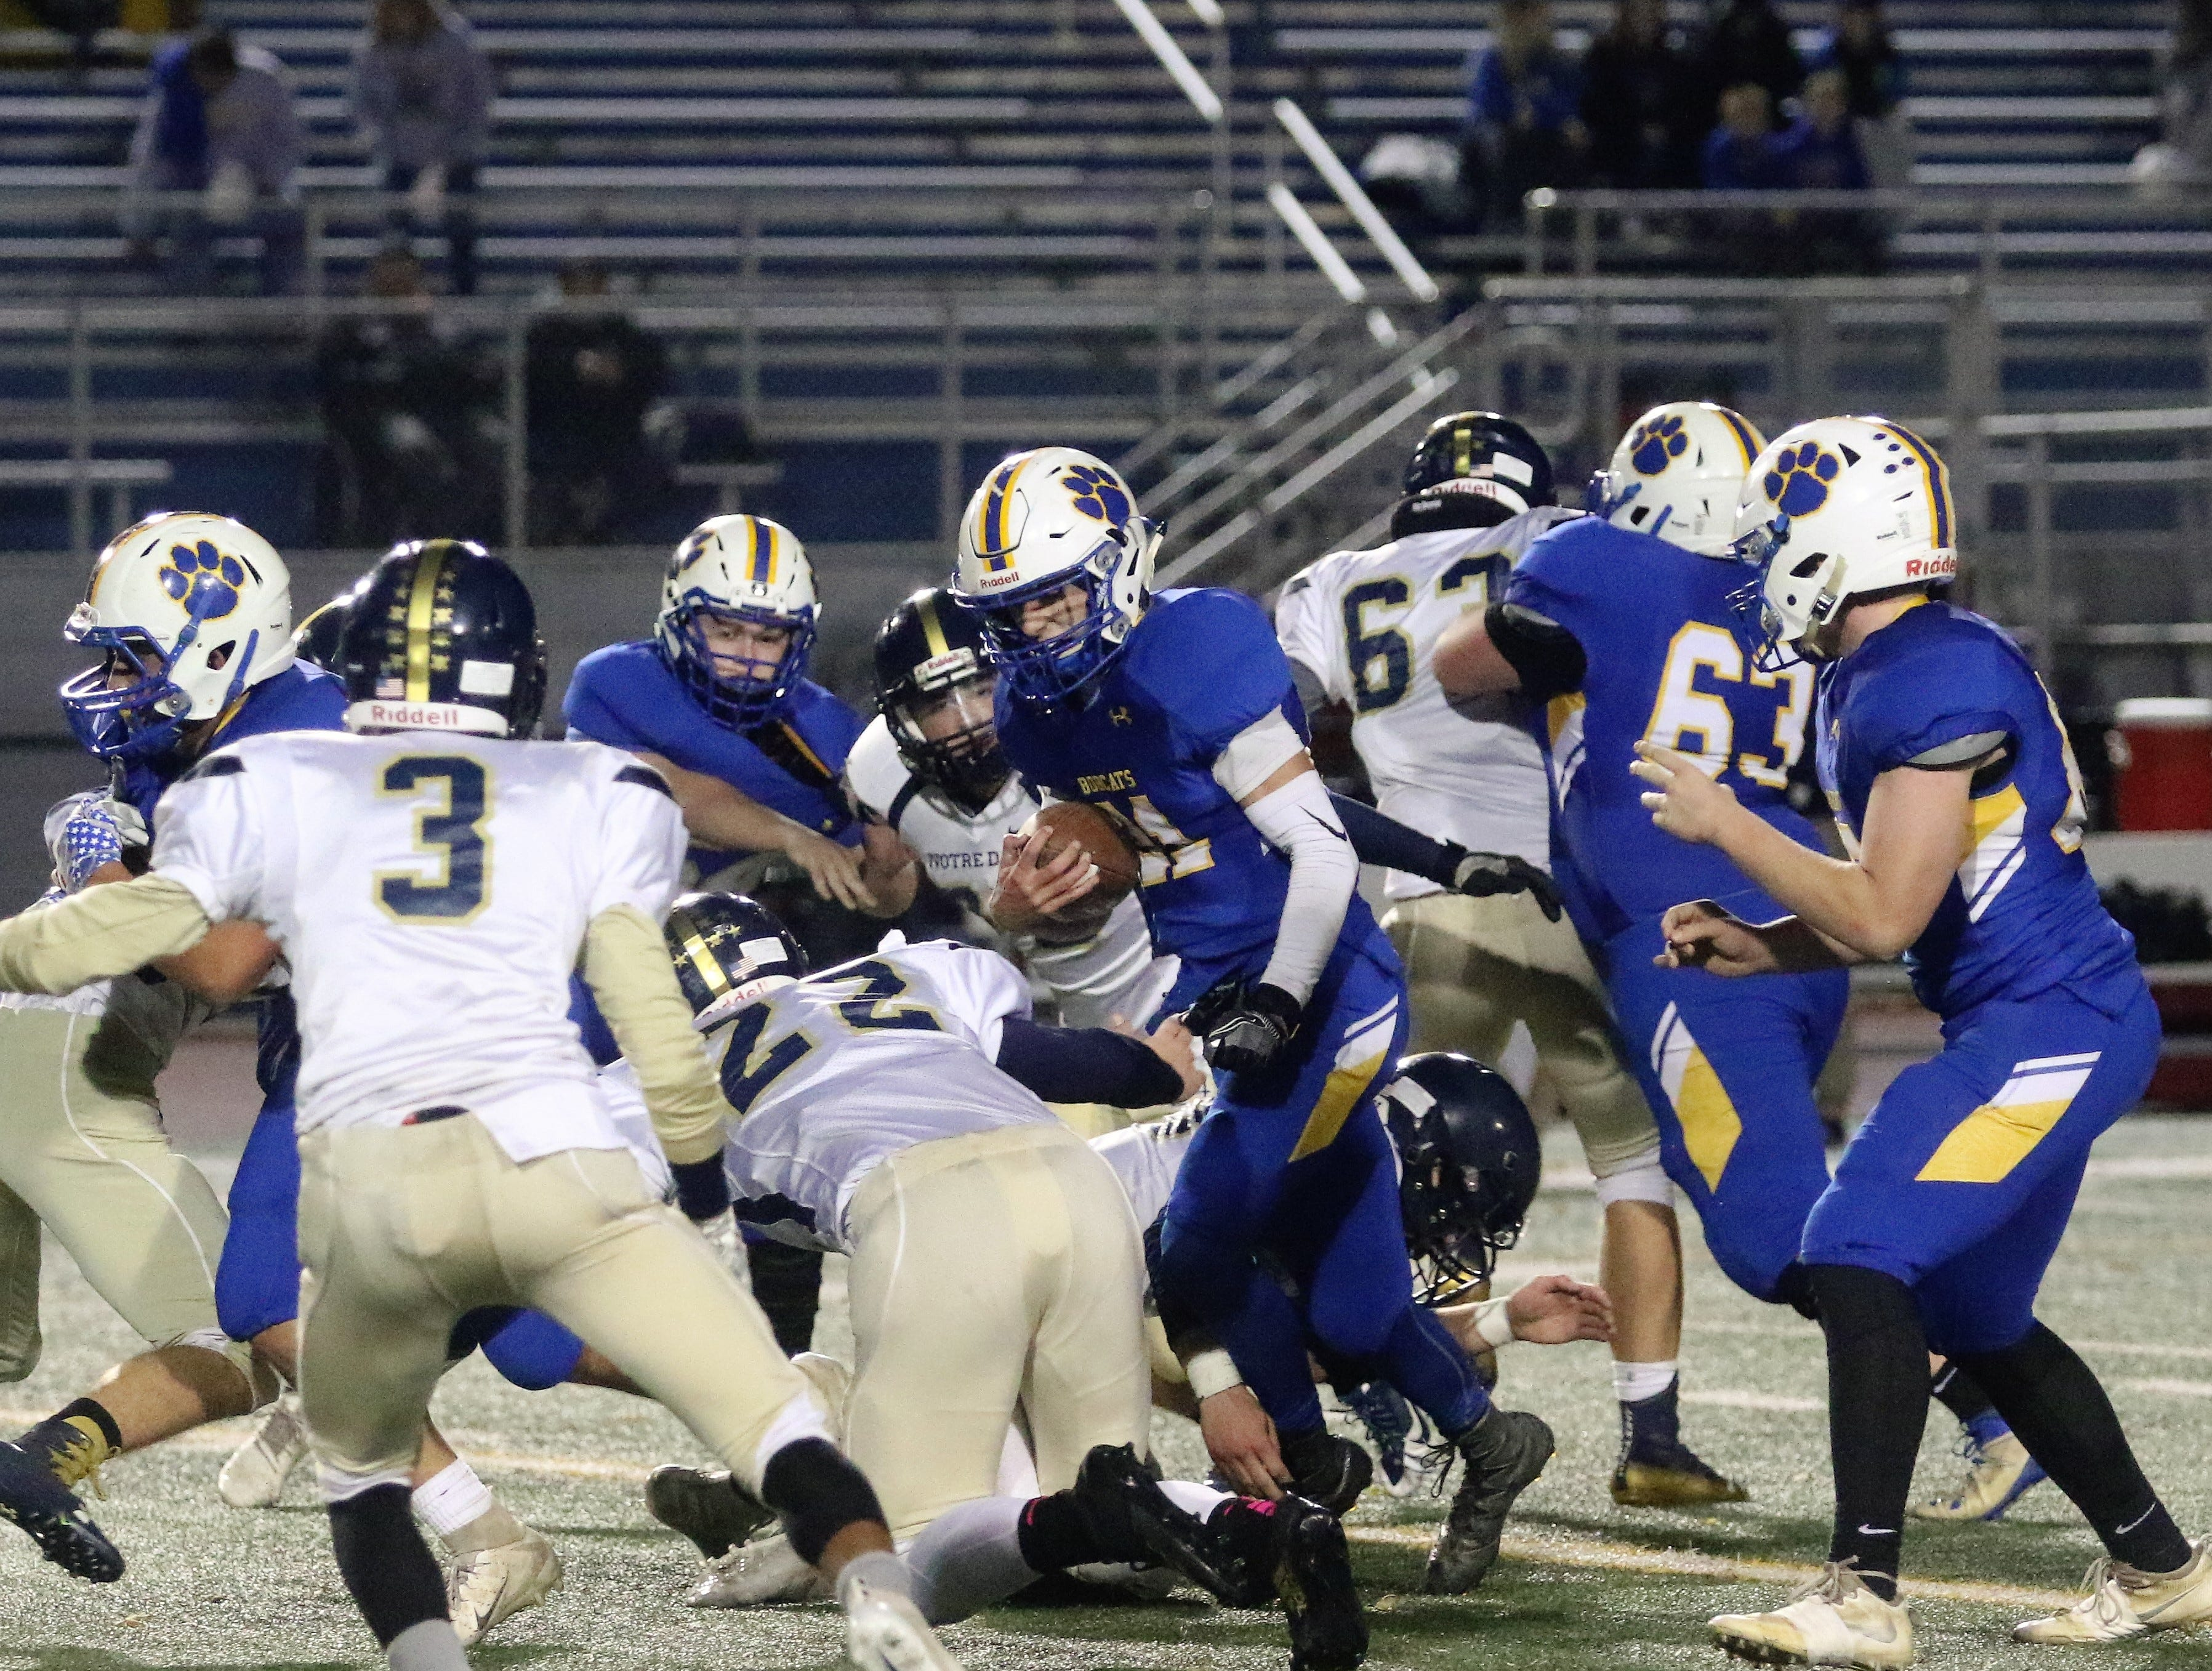 Elmira Notre Dame was a 38-20 winner over Lansing in the Section 4 eight-man football championship game Nov. 2, 2018 at Binghamton Alumni Stadium.